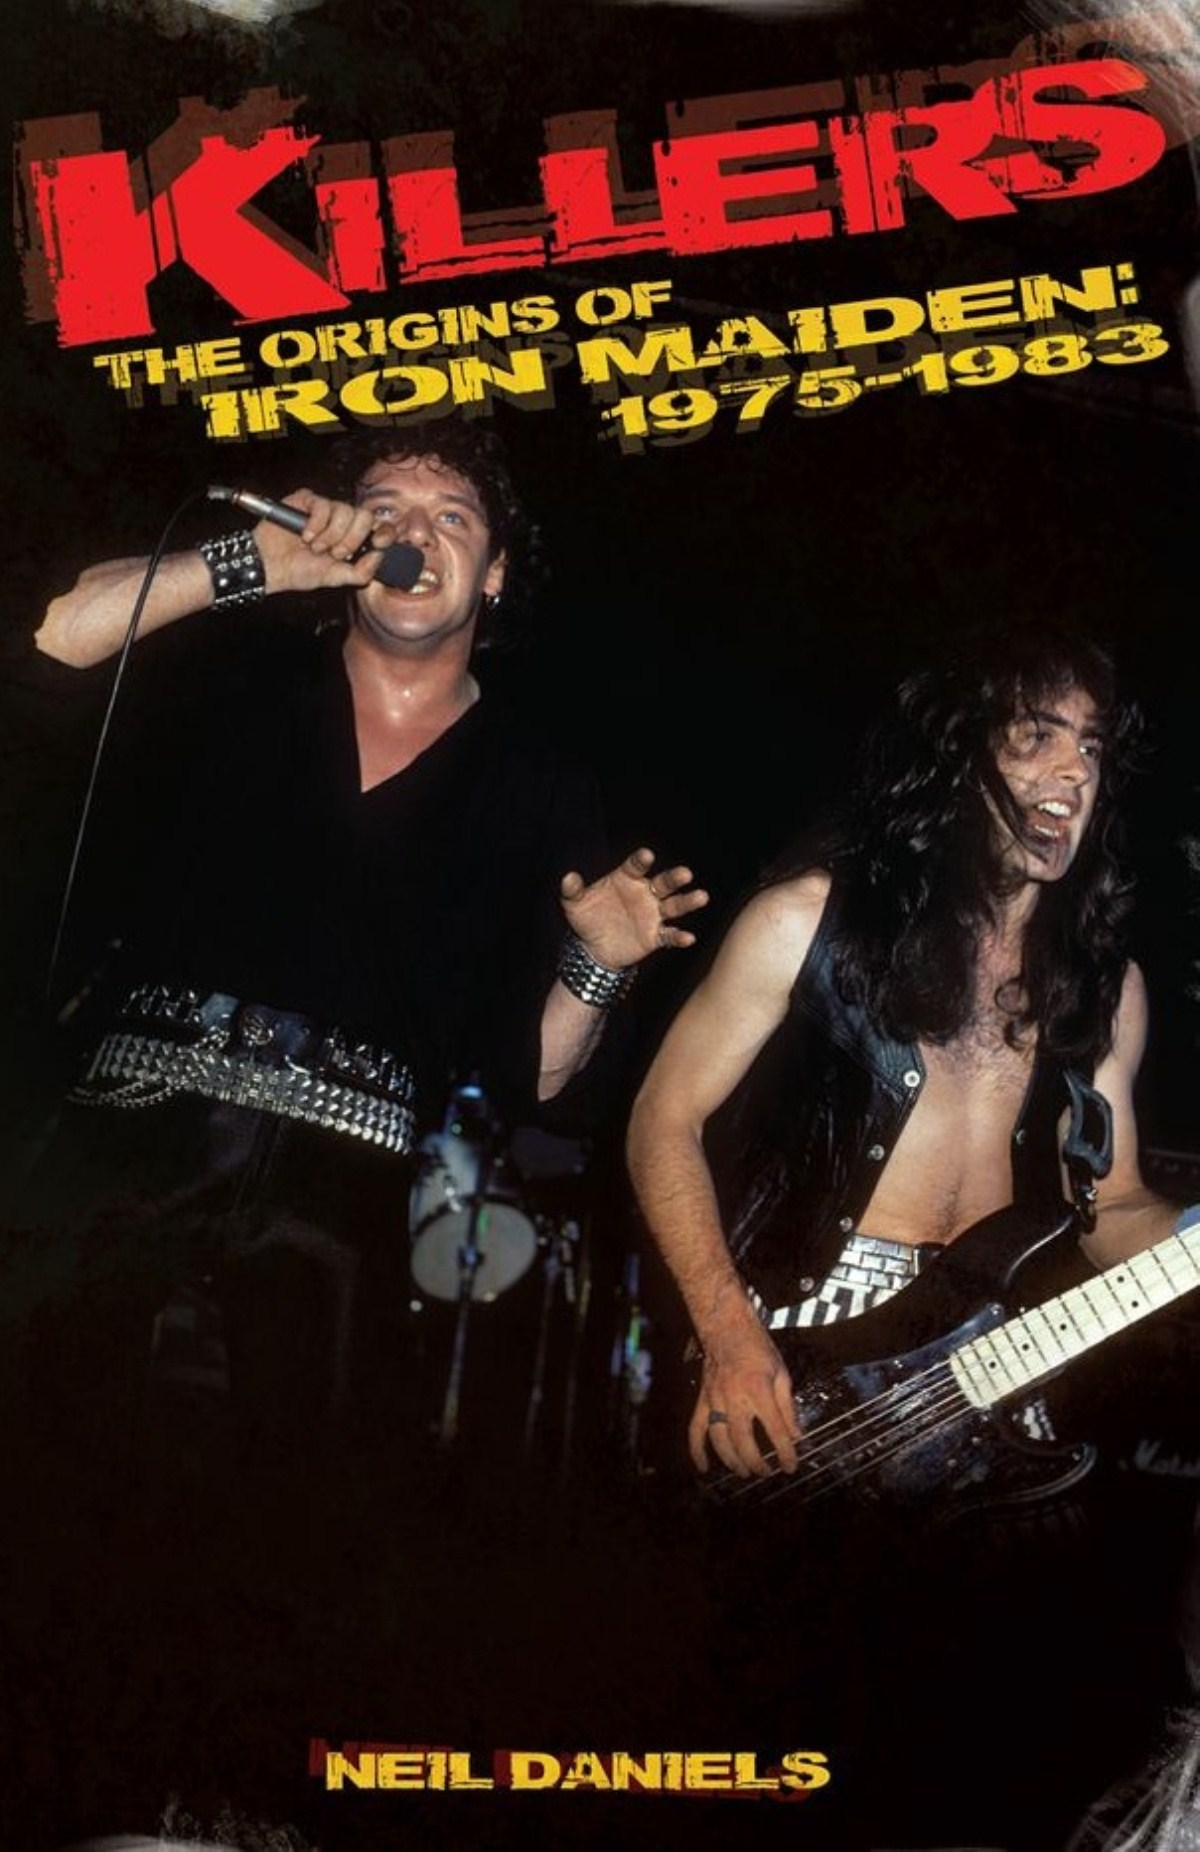 Neil Daniels' second book on Iron Maiden